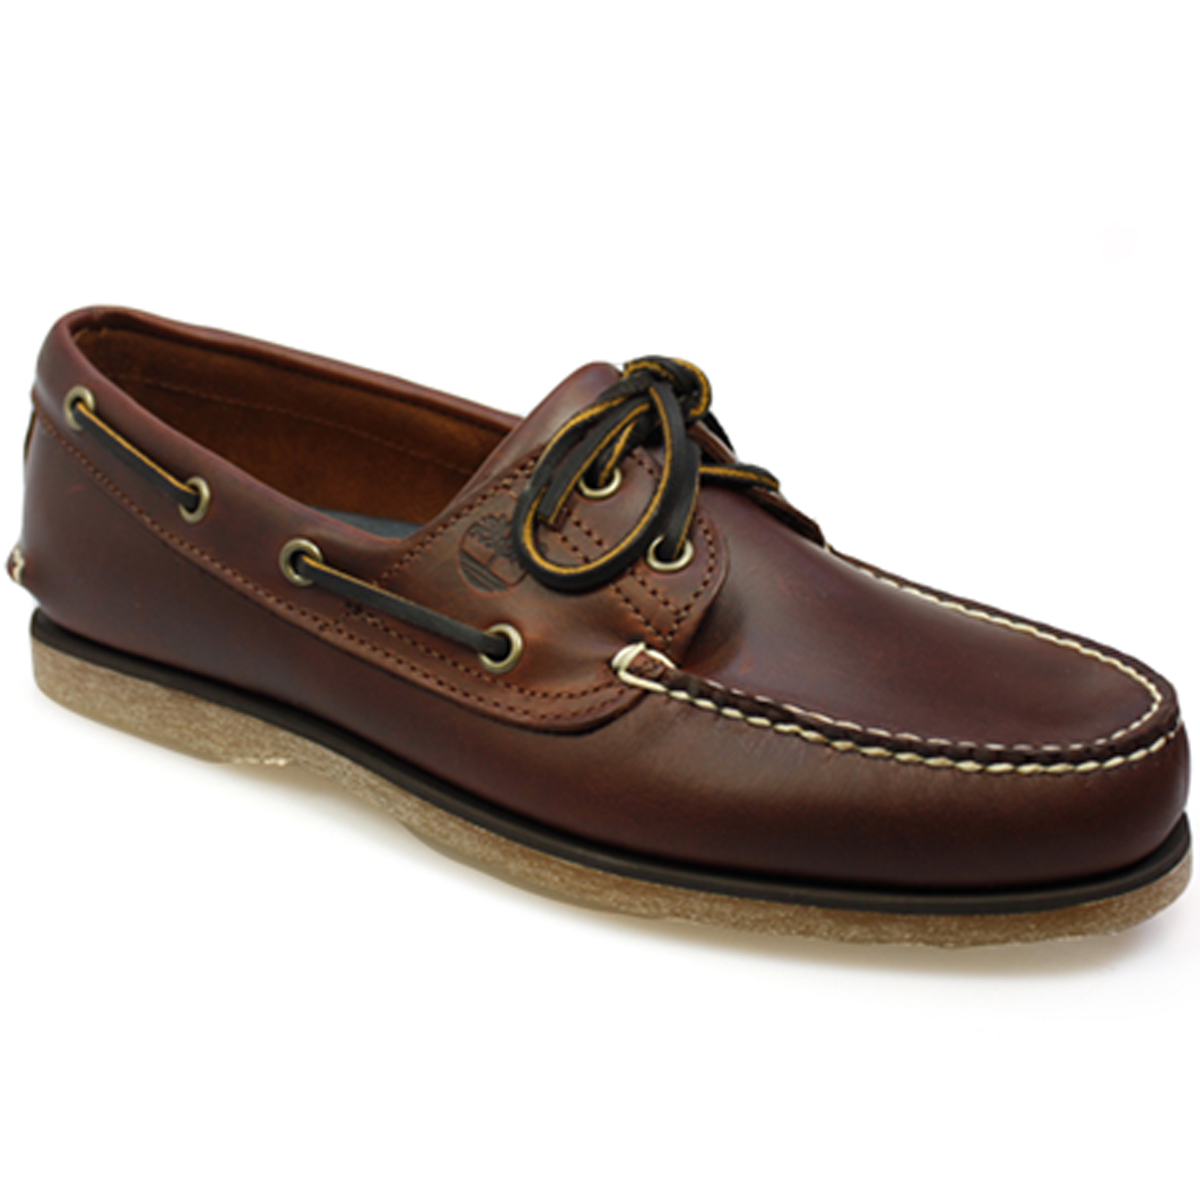 Sperry Men's Authentic Original A/O Boat Shoe - Brown 10W. The authentic Sperry Top-Sider boat shoe has returned for easy casual pairings. In an array of fresh new colors, it features a genuine leather upper, stylish comfort and all the details that made it an instant classic. more.